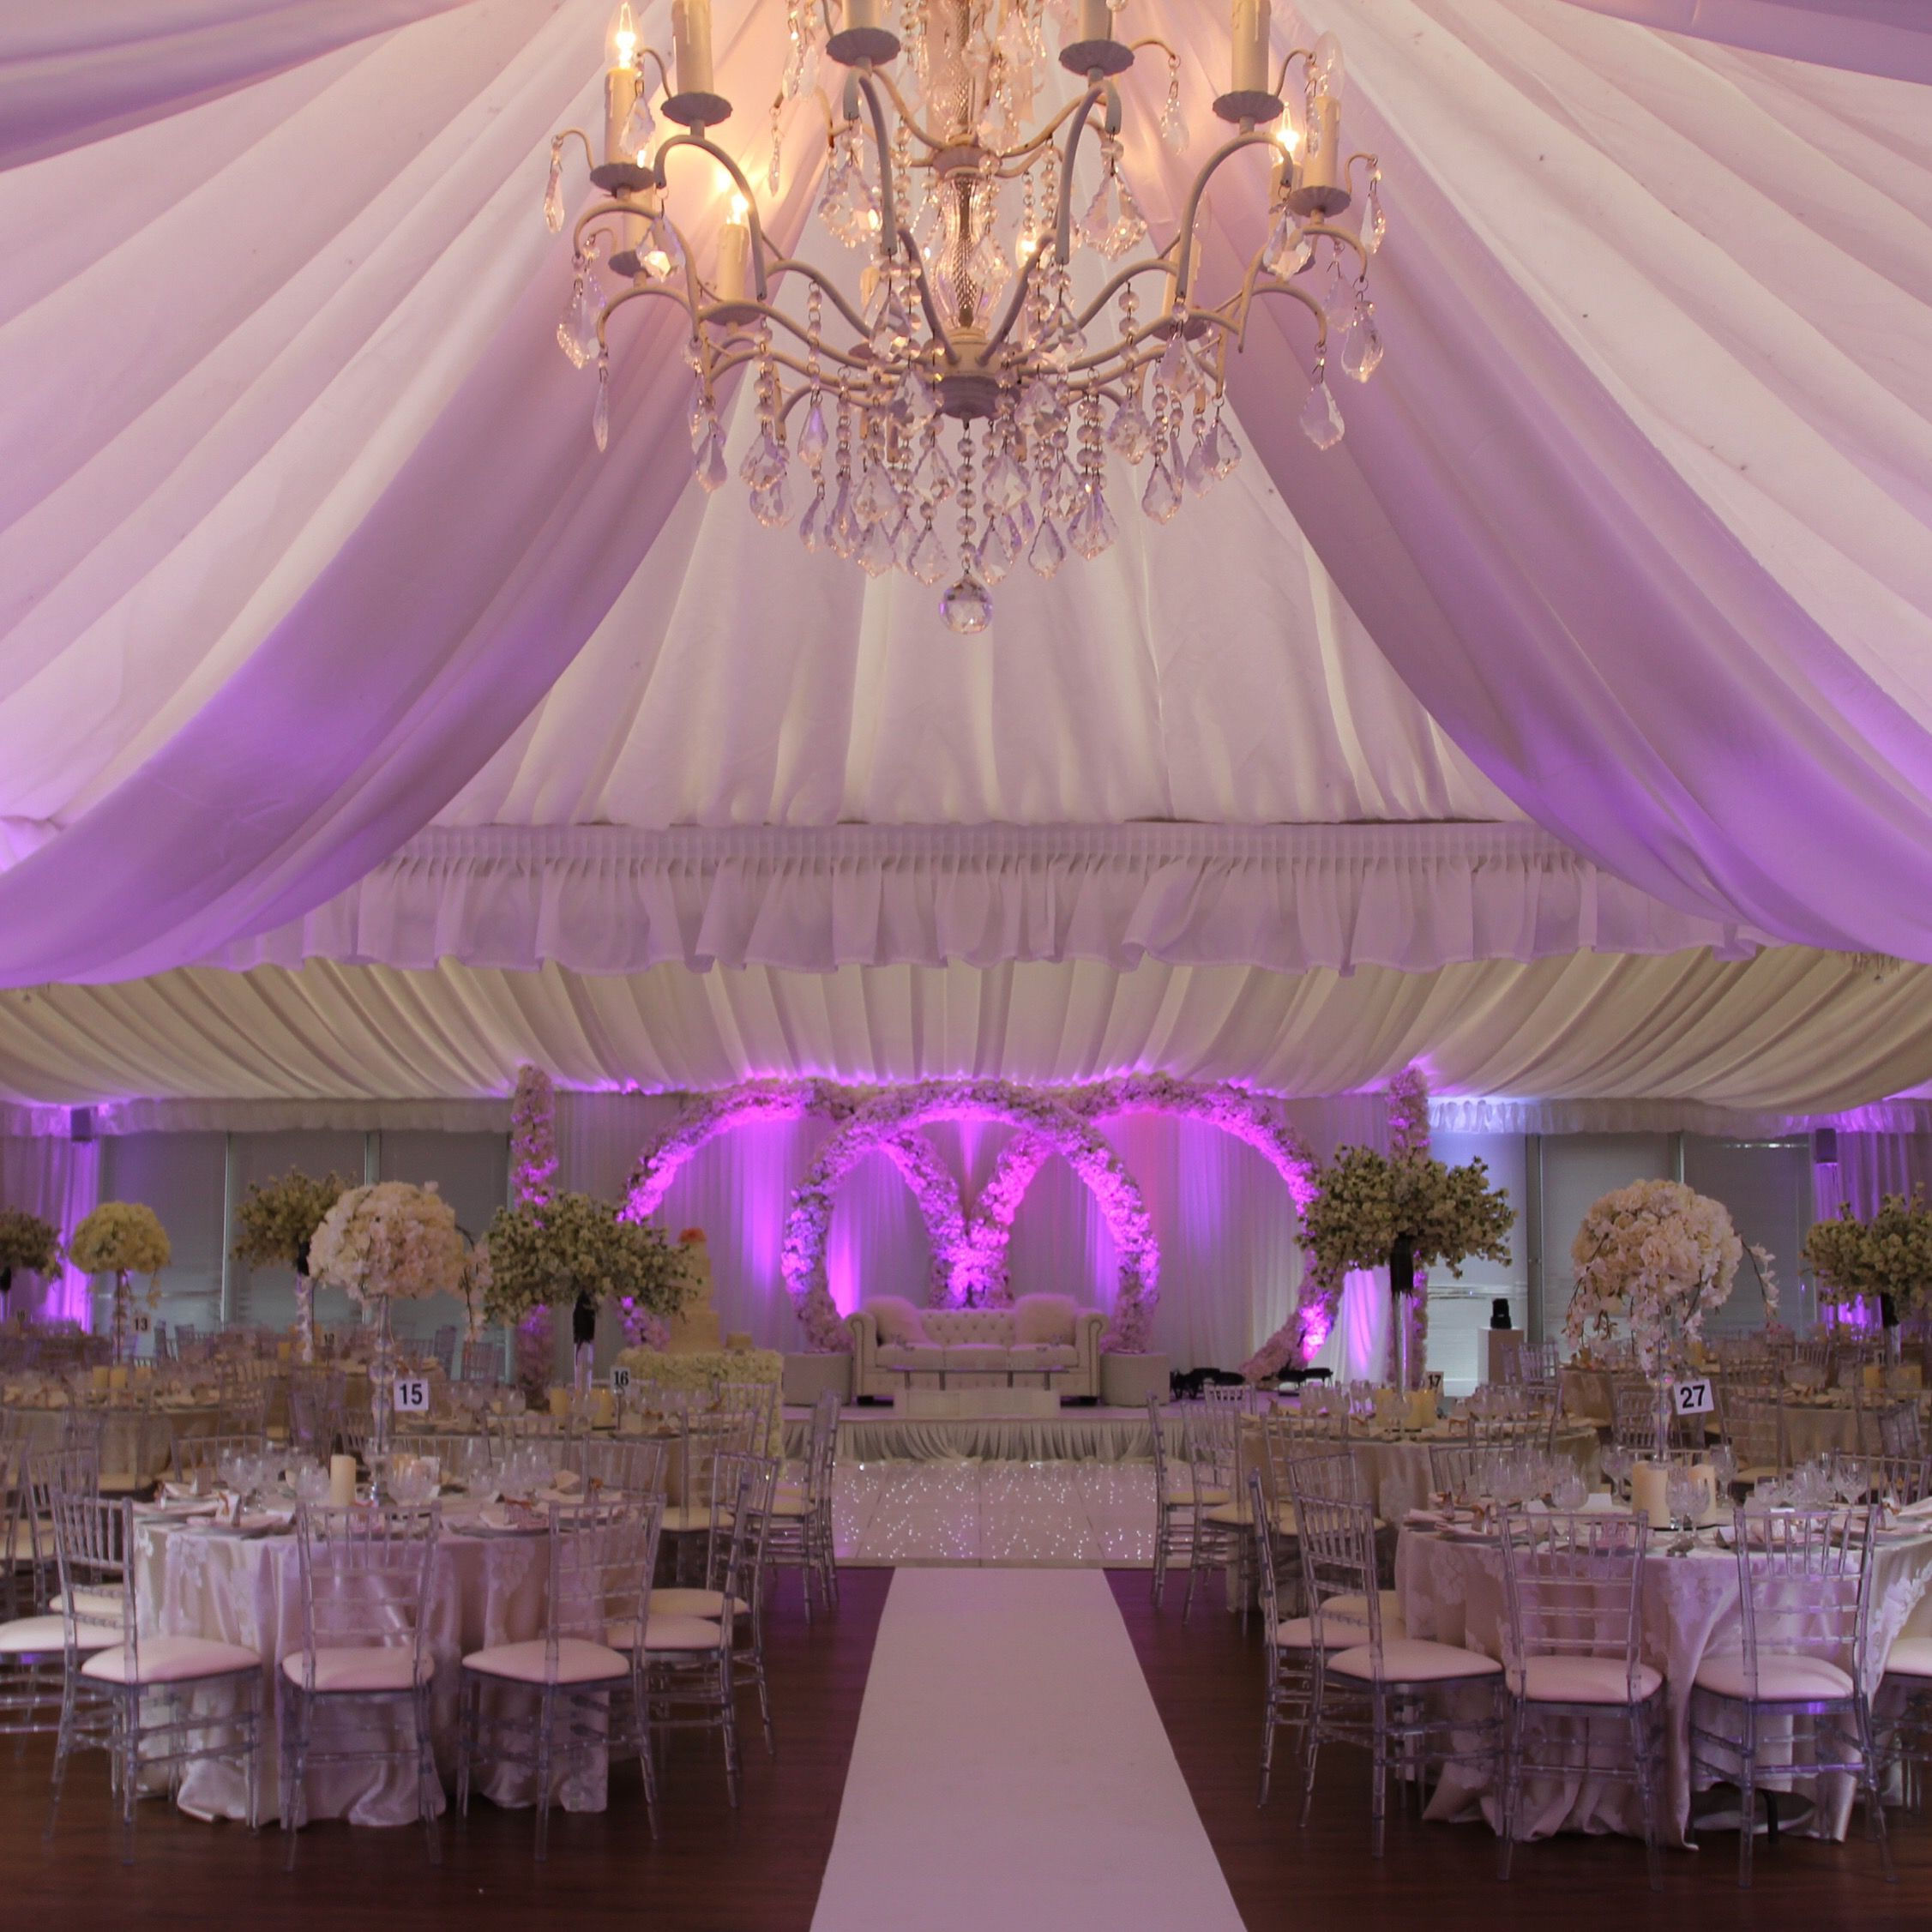 Nigerian Wedding In Our Stunning Pavilion Decoration By Royal Event